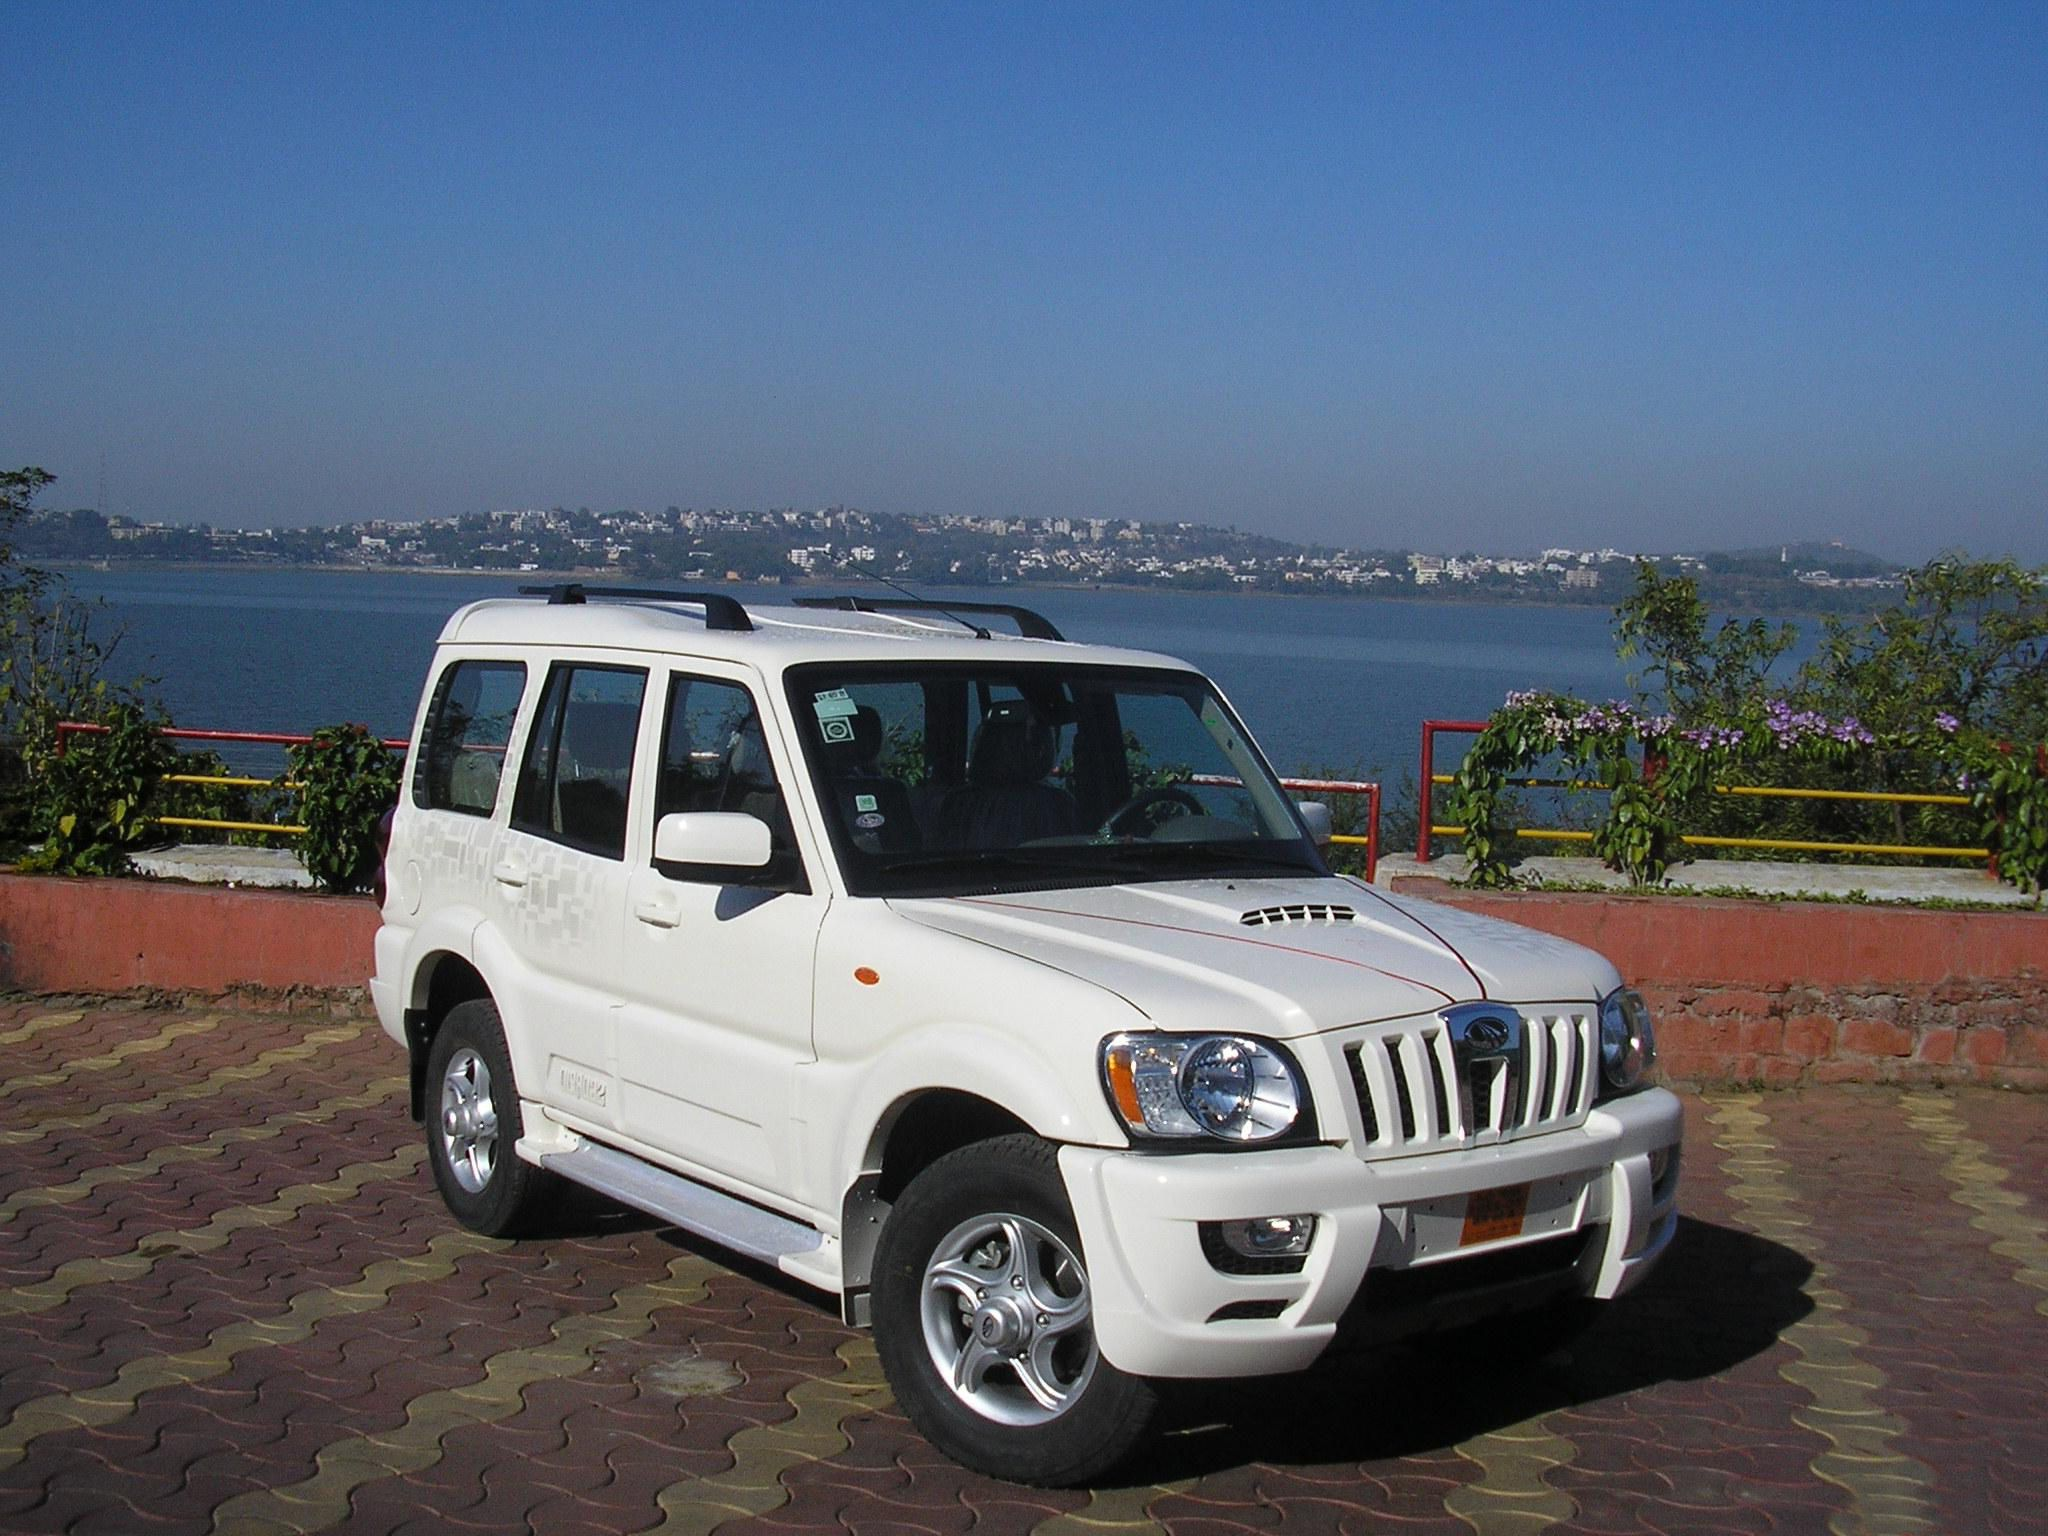 Mahindra Scorpio Desktop Wallpaper This Wallpaper Images